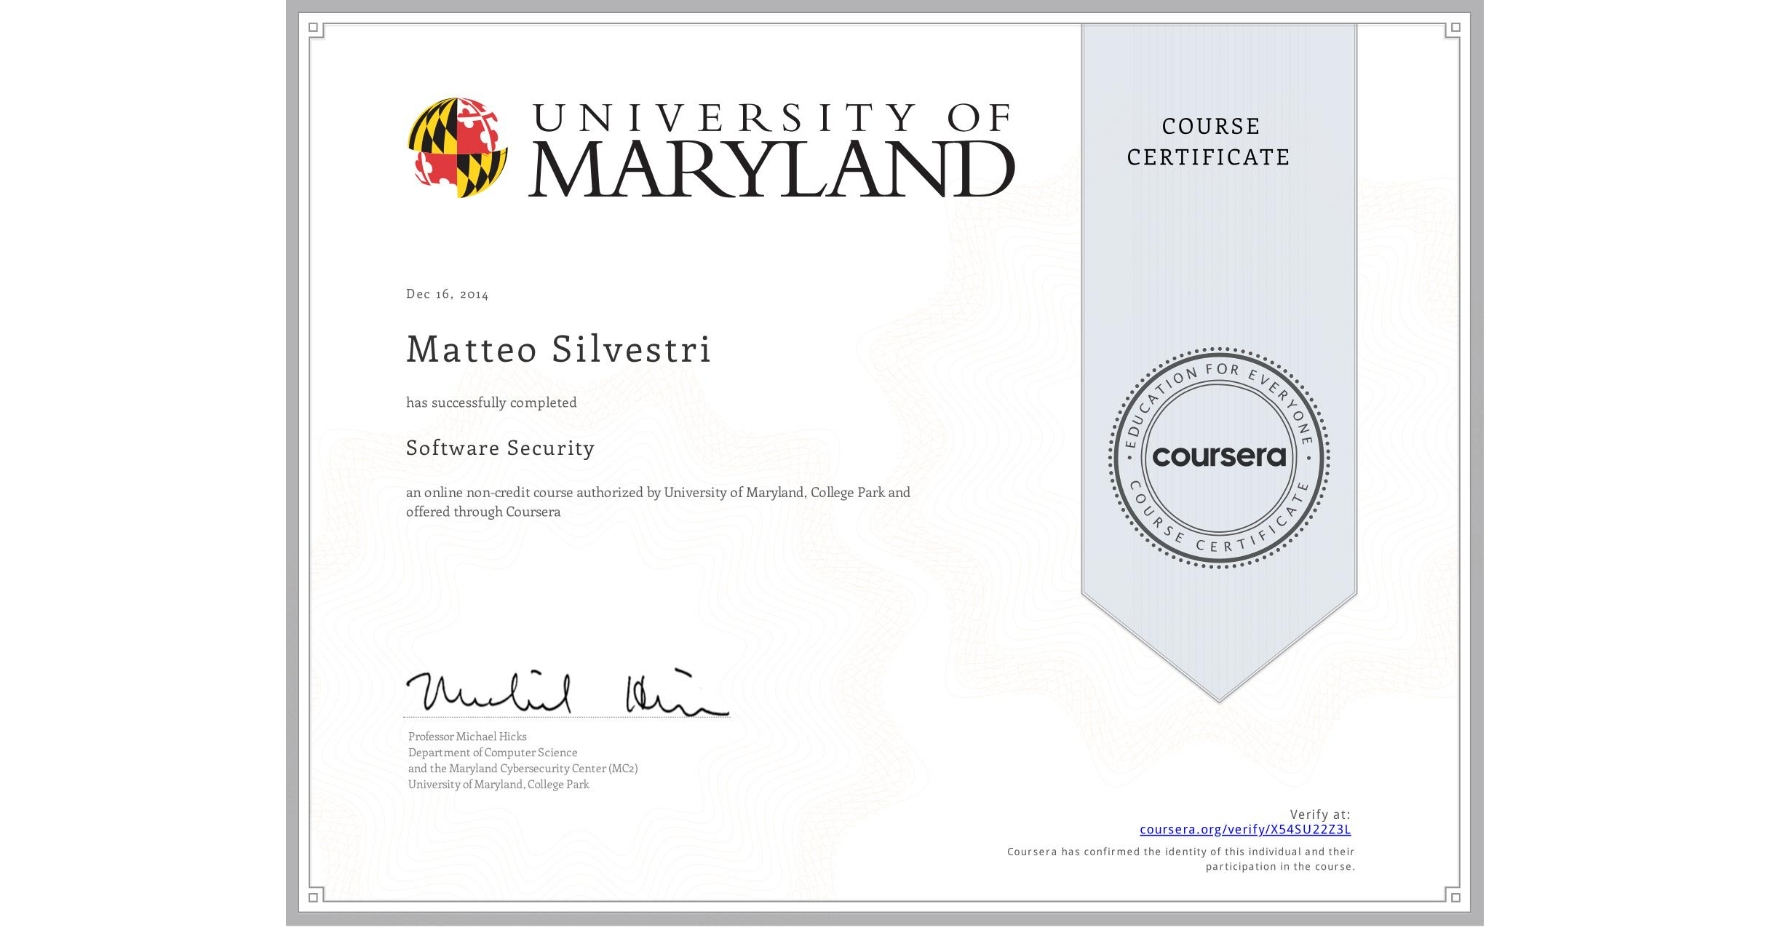 View certificate for Matteo Silvestri, Software Security , an online non-credit course authorized by University of Maryland, College Park and offered through Coursera